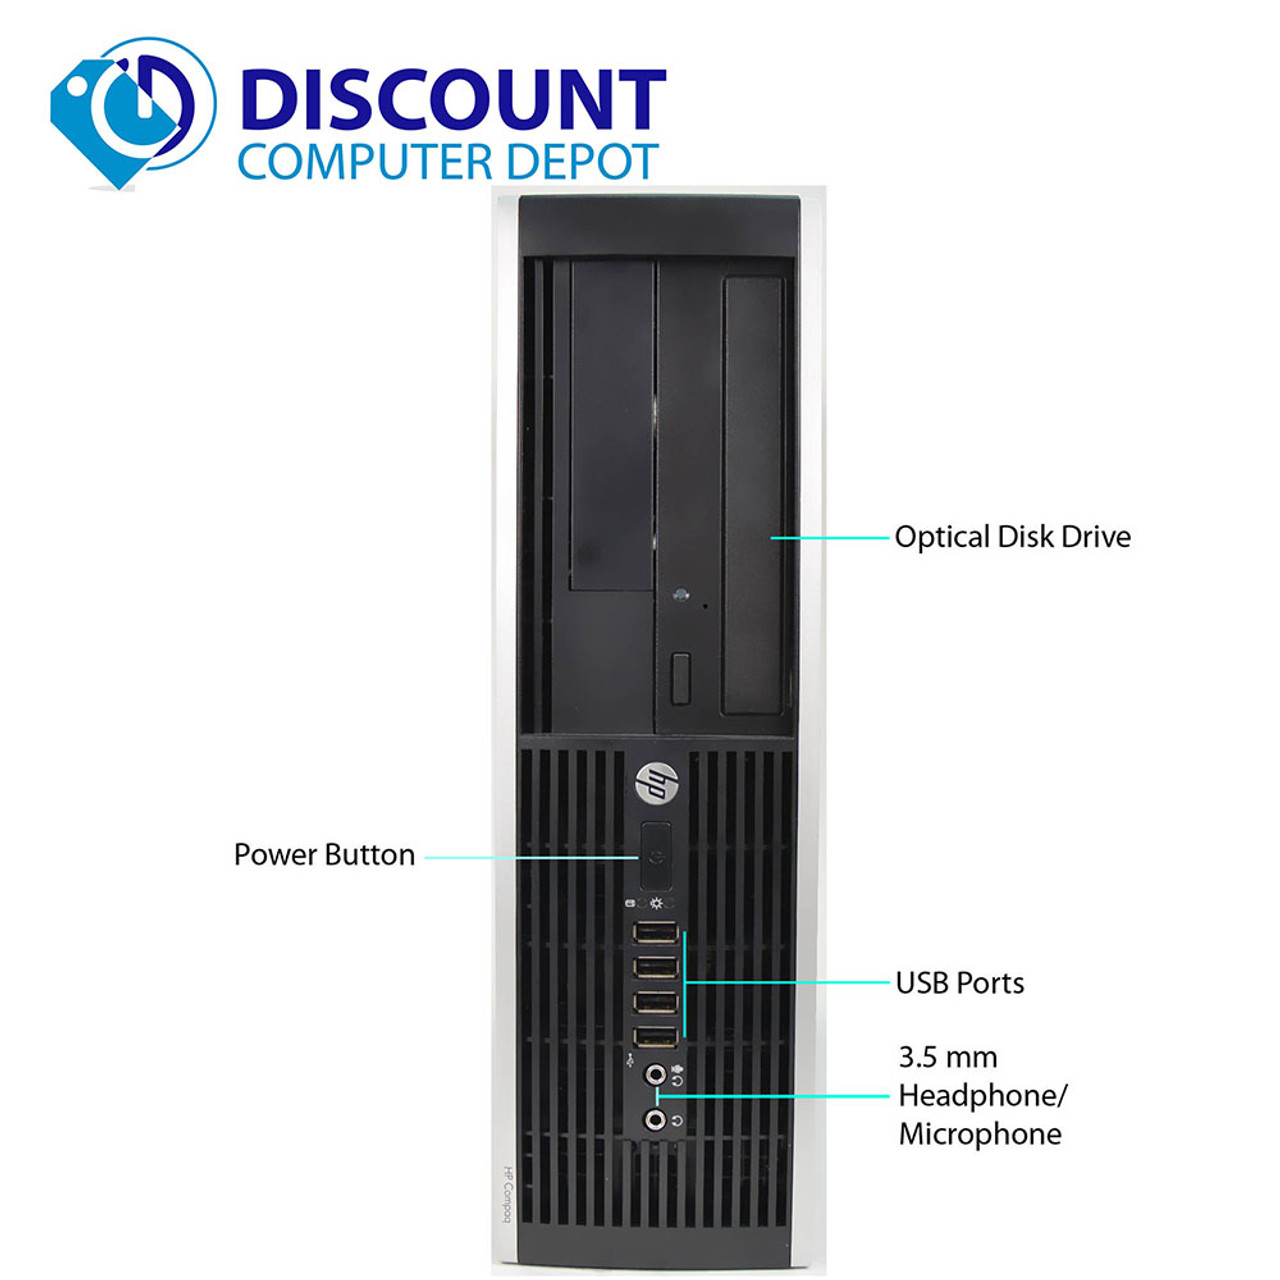 HP Pro Desktop Computer Tower PC 2 8GHz 4GB 160GB 17